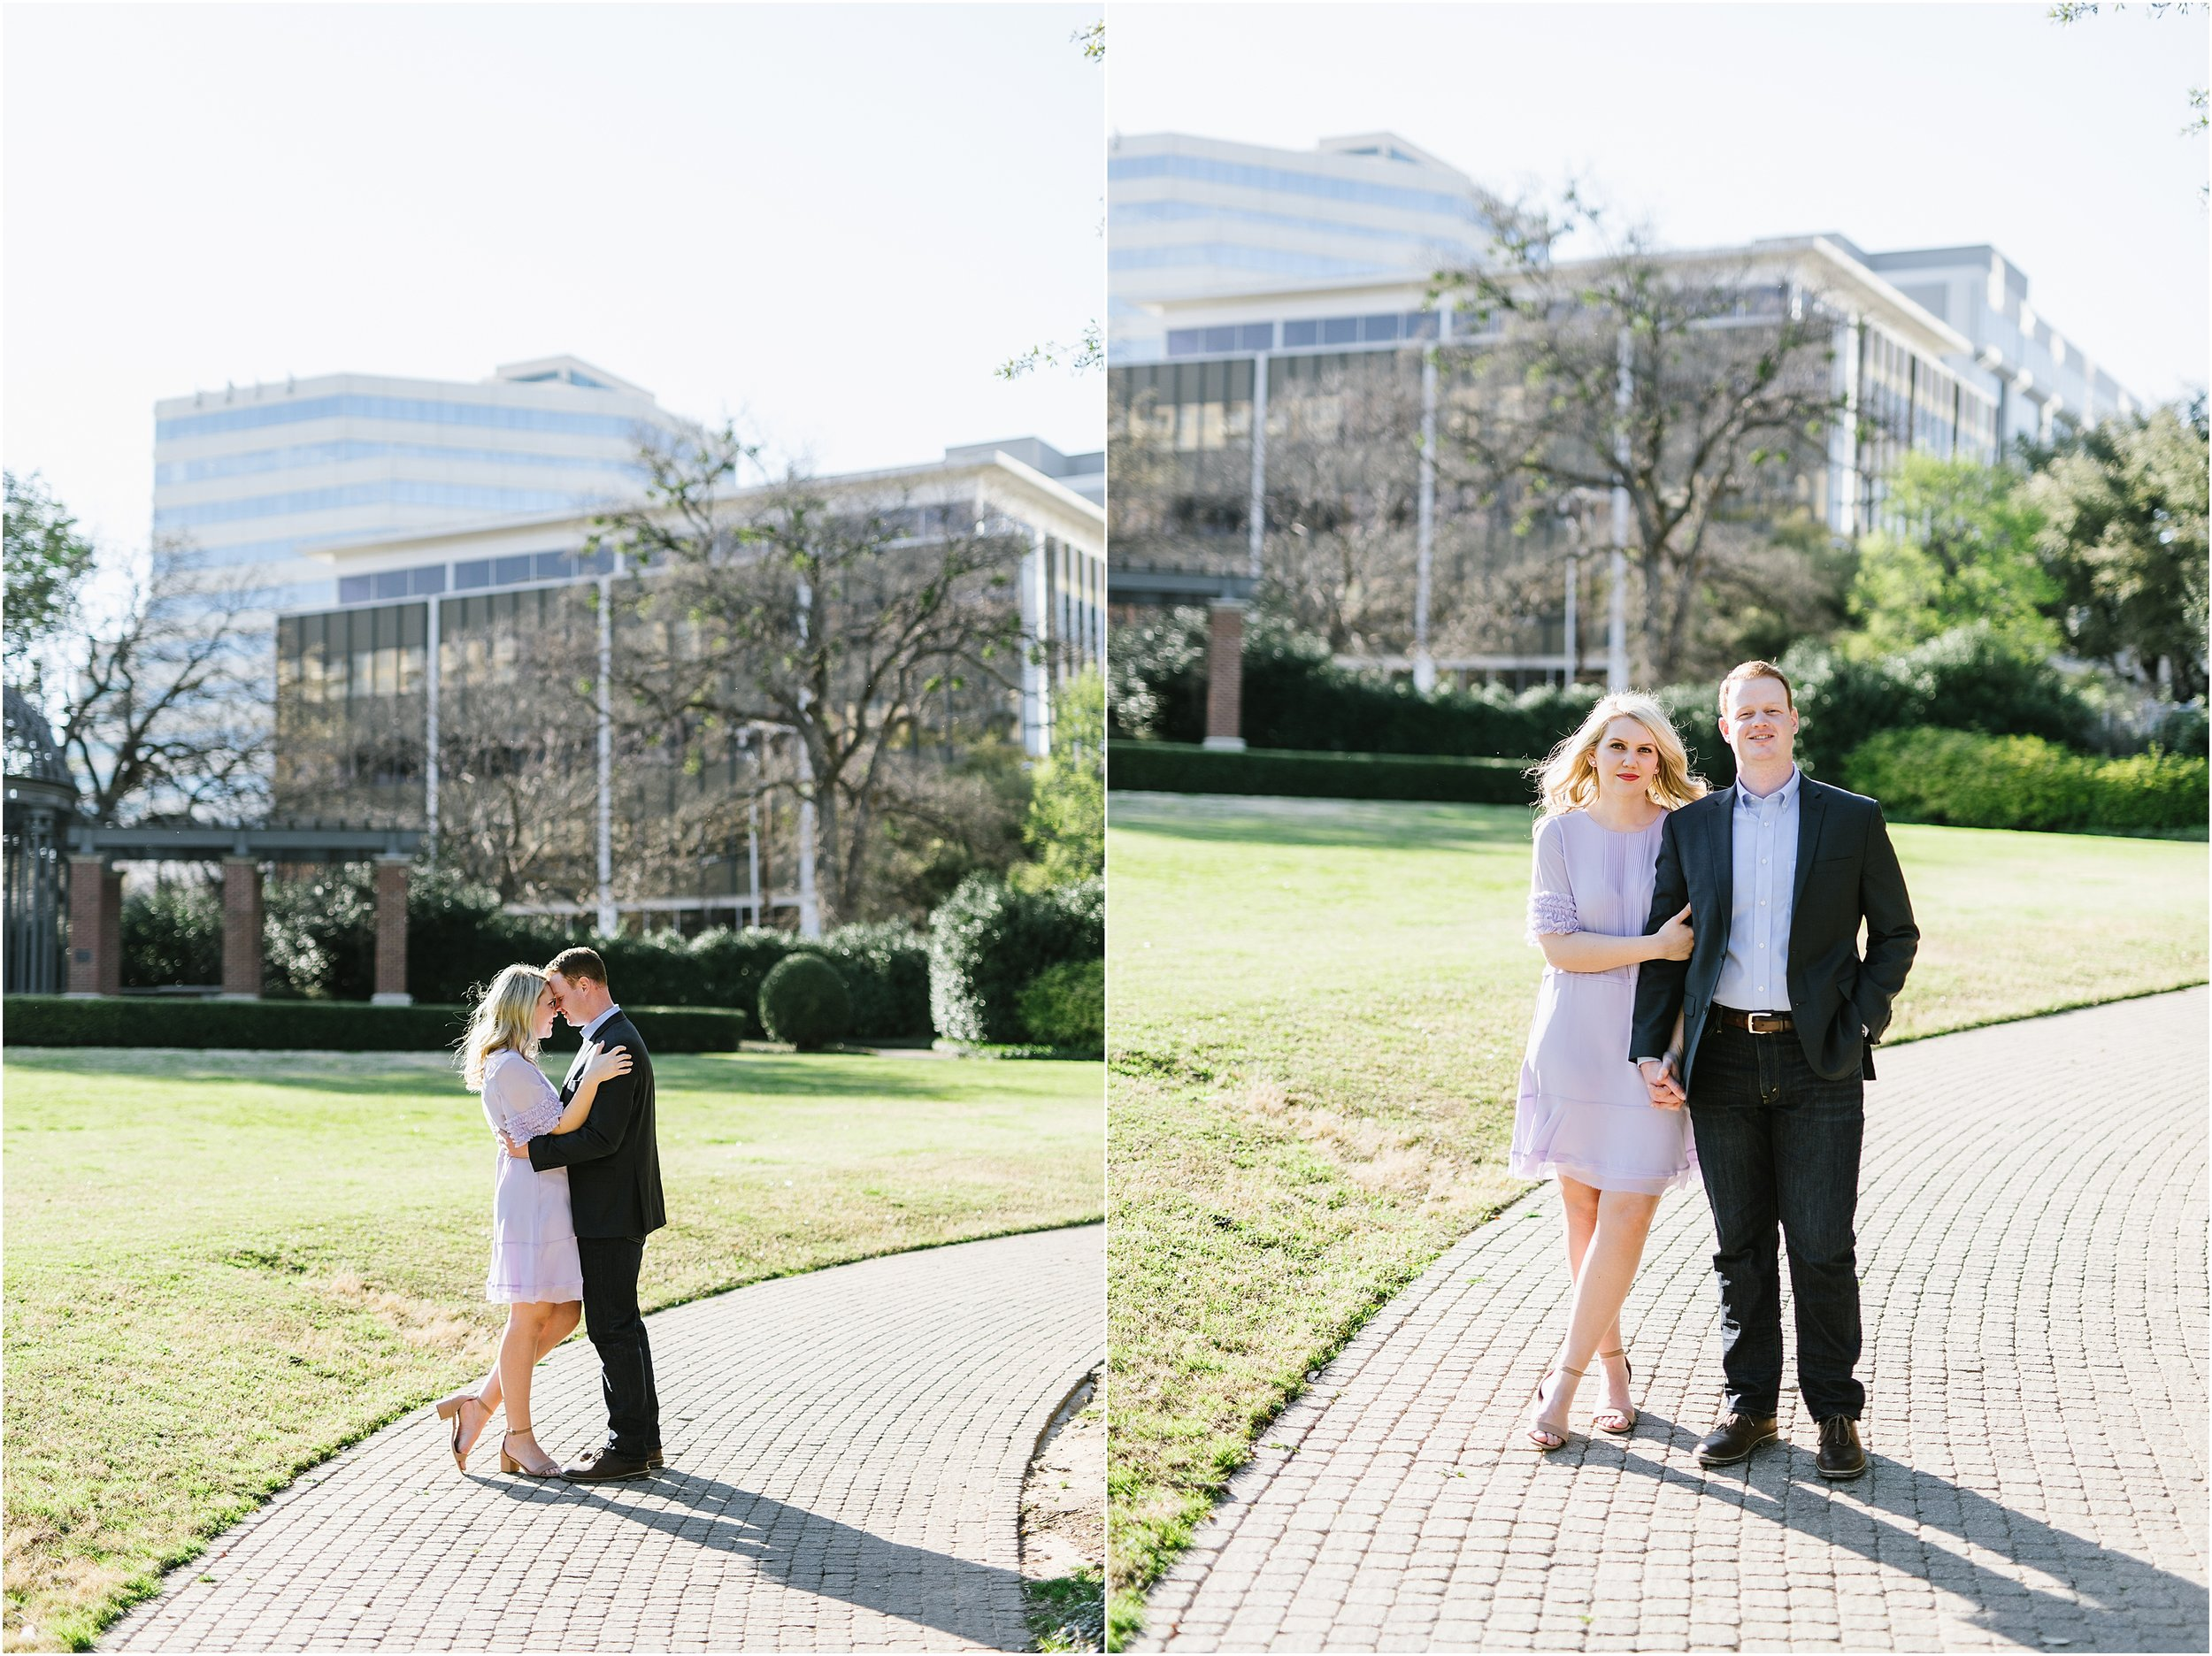 mattandjulieweddings-dallasweddingphotographers-C+J_0012.jpg